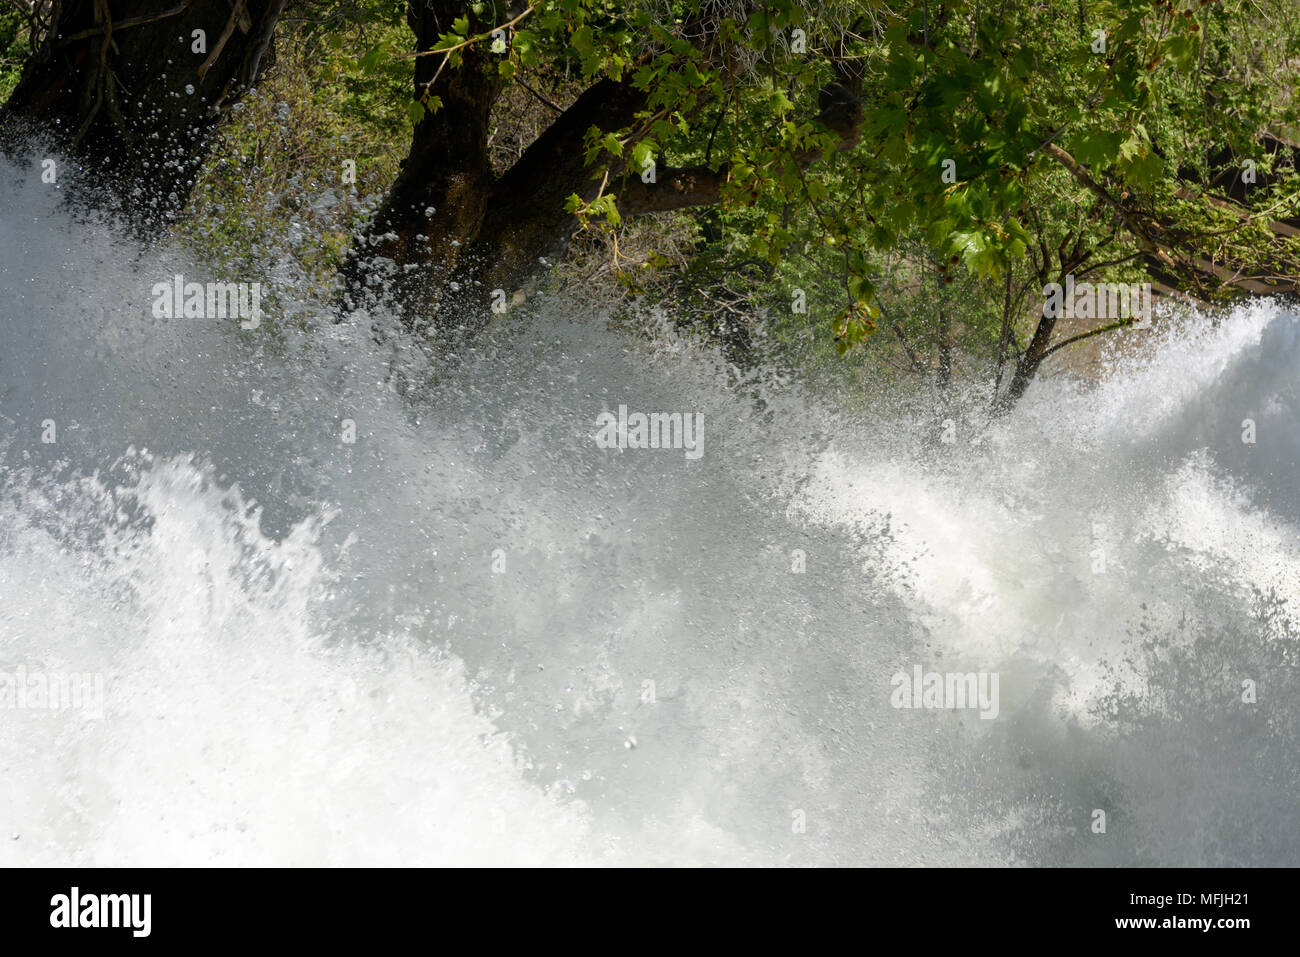 Close-up of turbulent water or river stream flowing through the woods - Stock Image